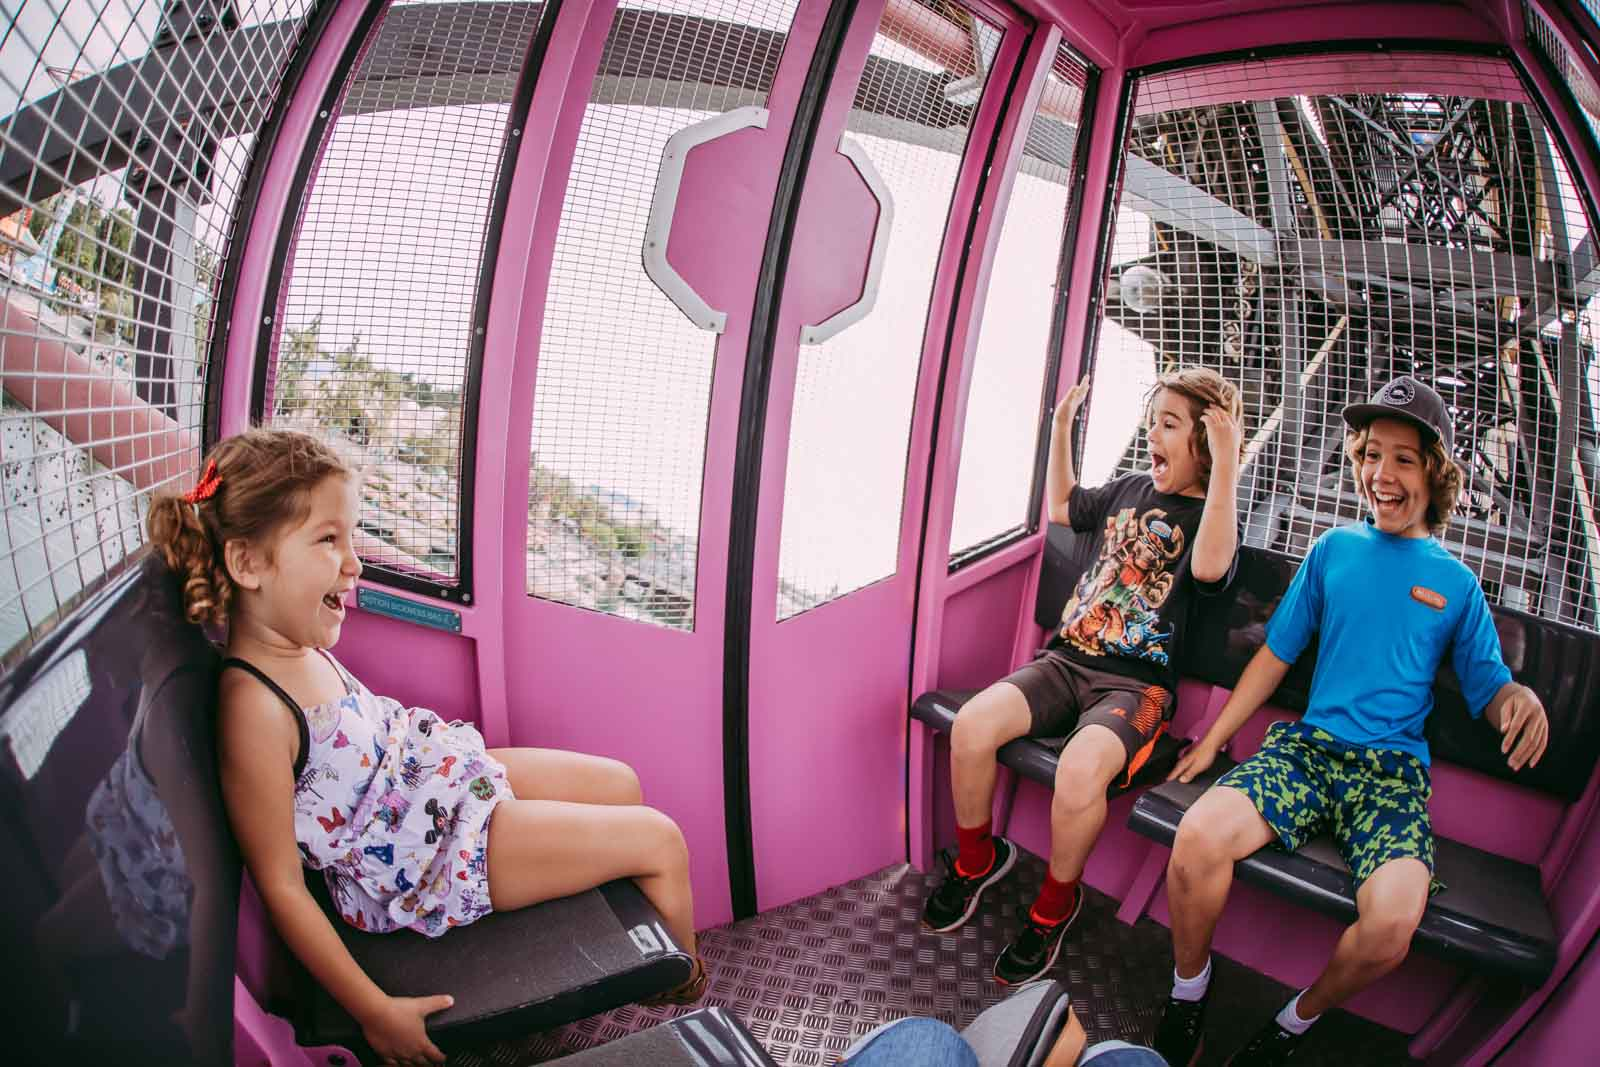 Disney photo of kids on a ferris wheel taken with fisheye lens, Disney photo tips on wide angle